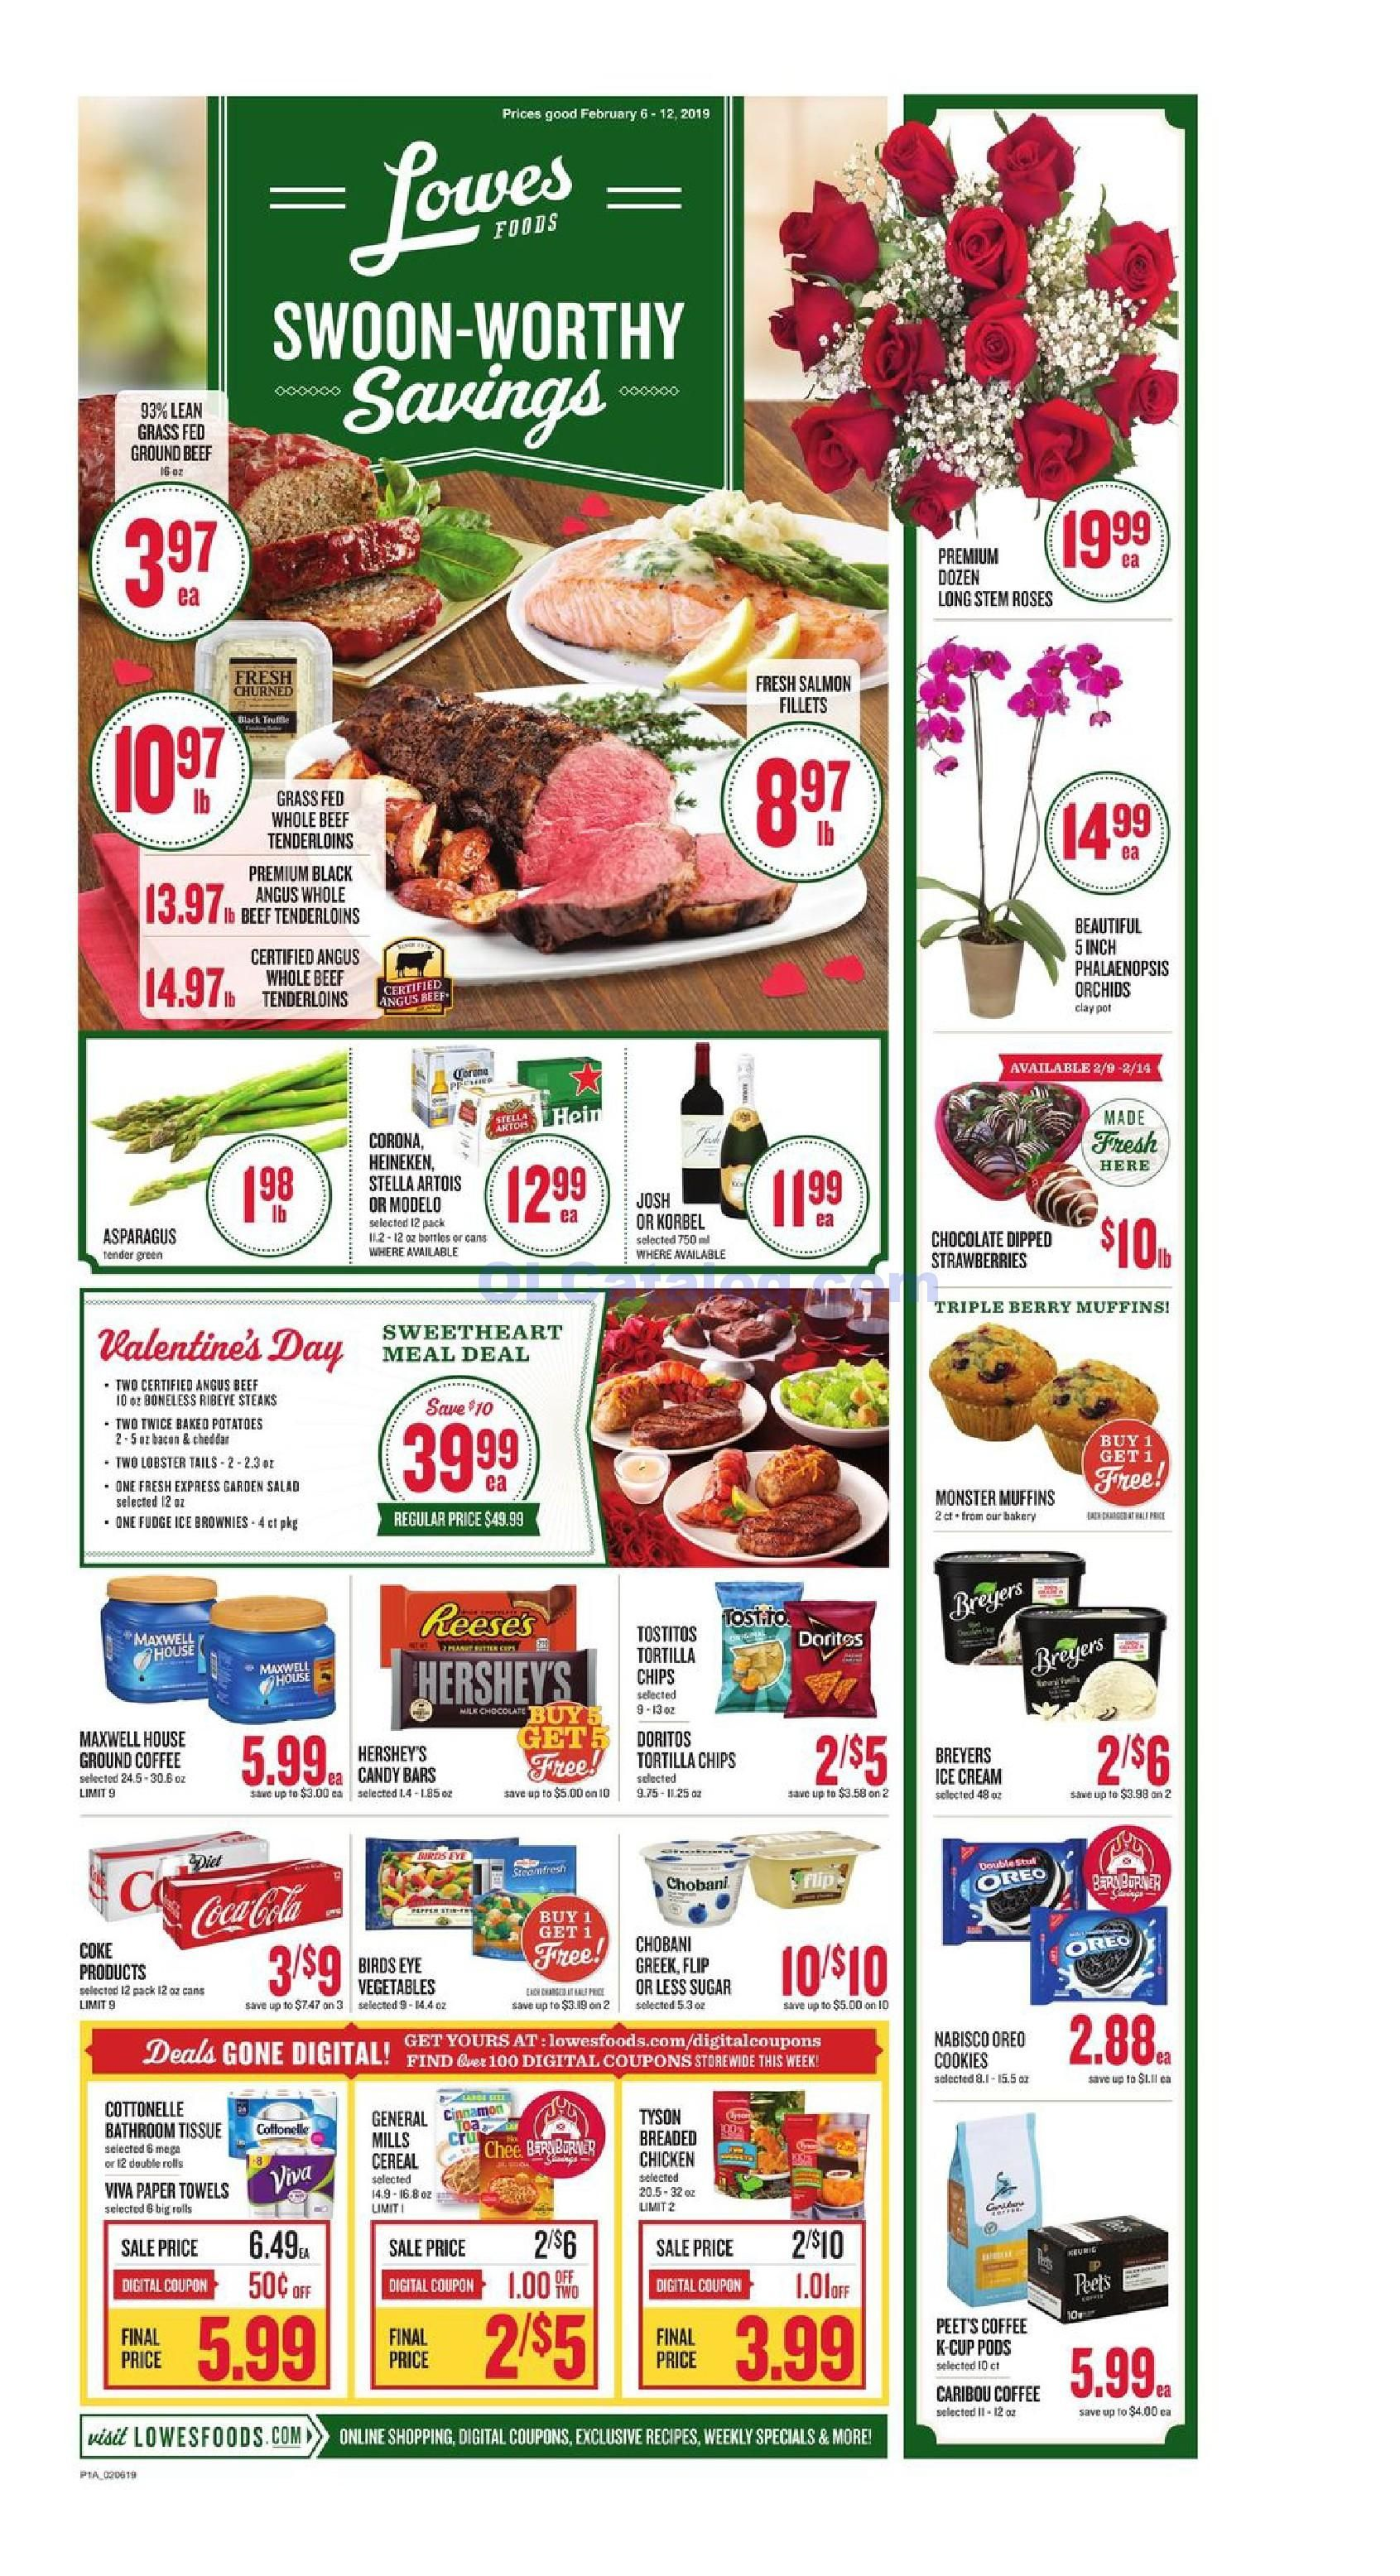 Lowes Foods Weekly Ad July 24 30, 2019